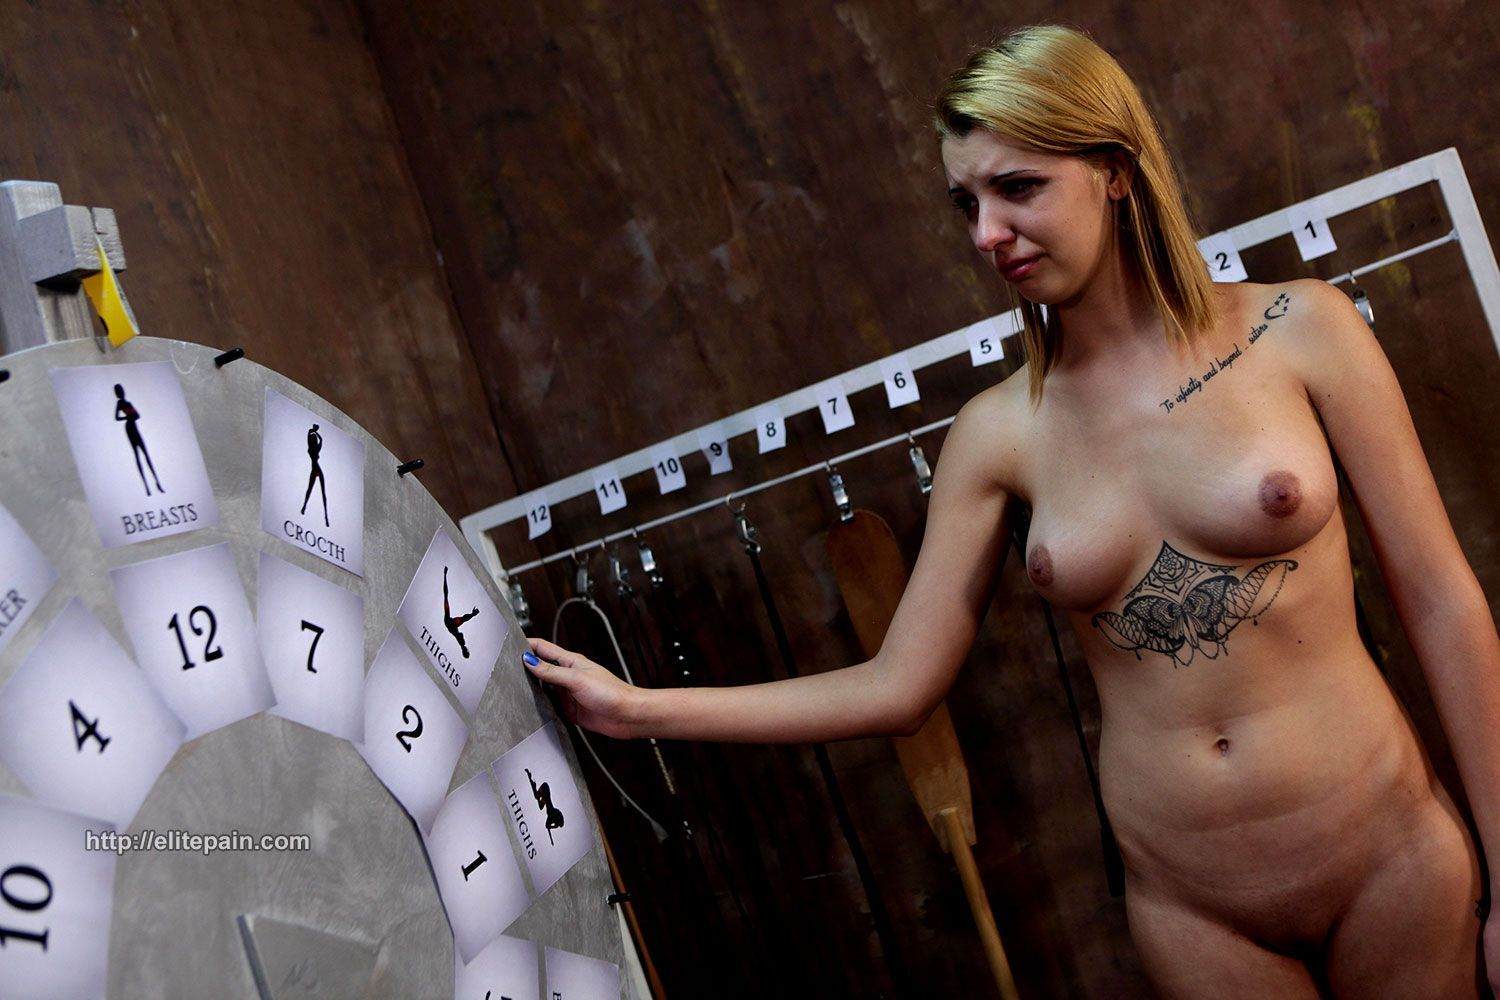 Girls hd college naked perky